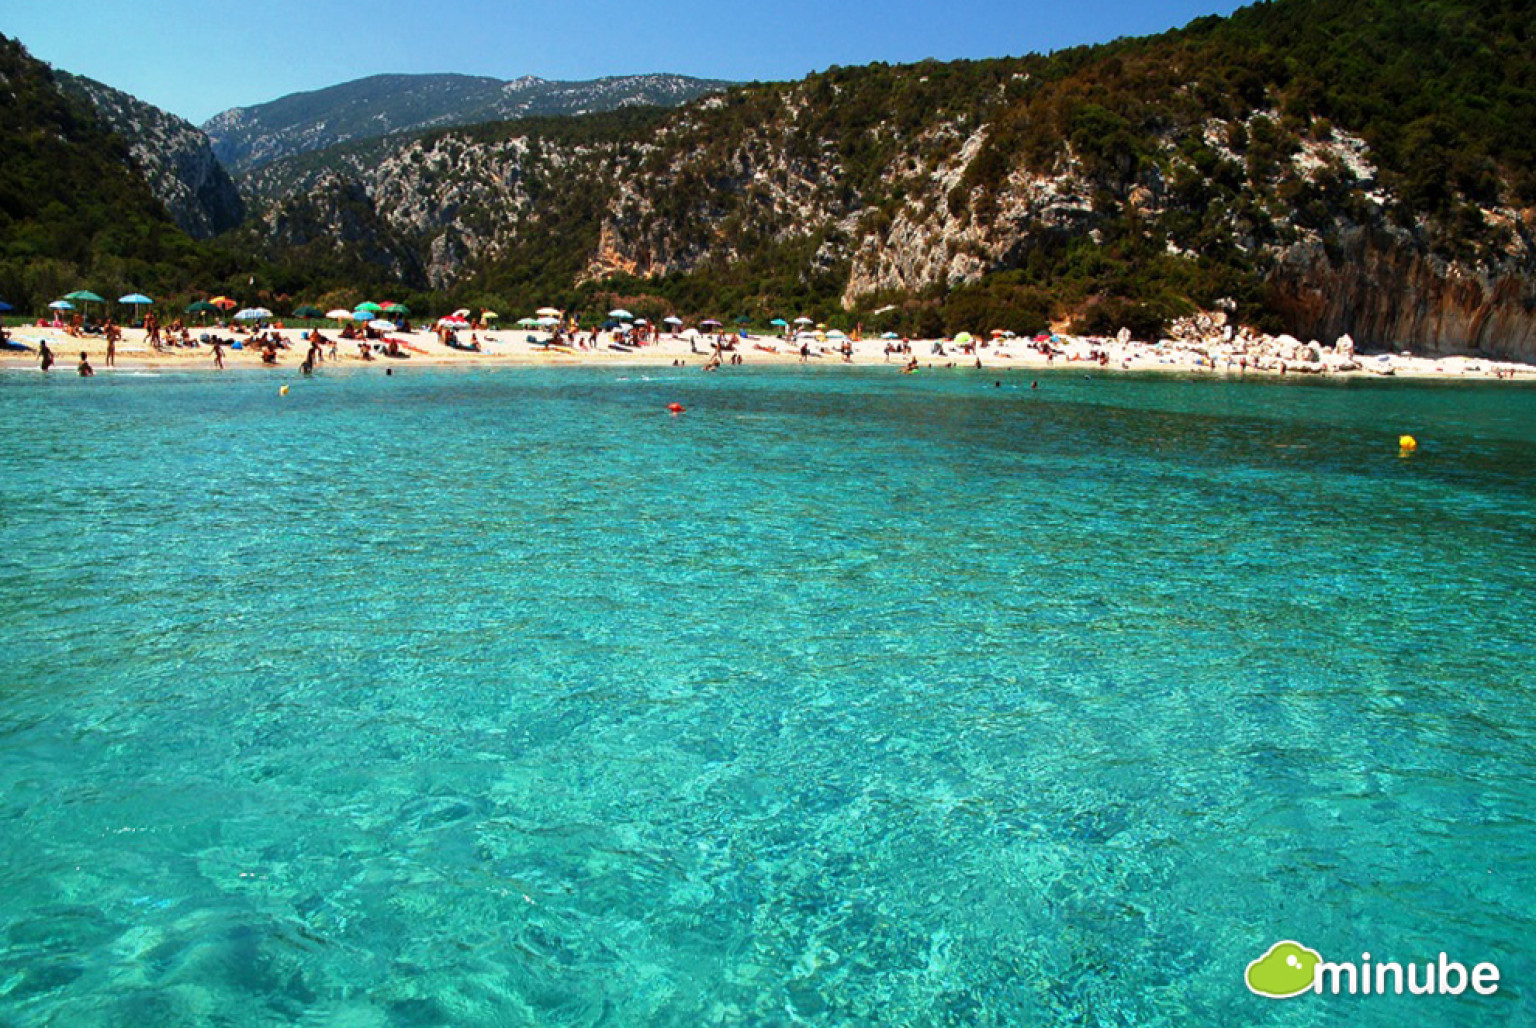 Europes Hottest Summer Destinations for 2013  HuffPost